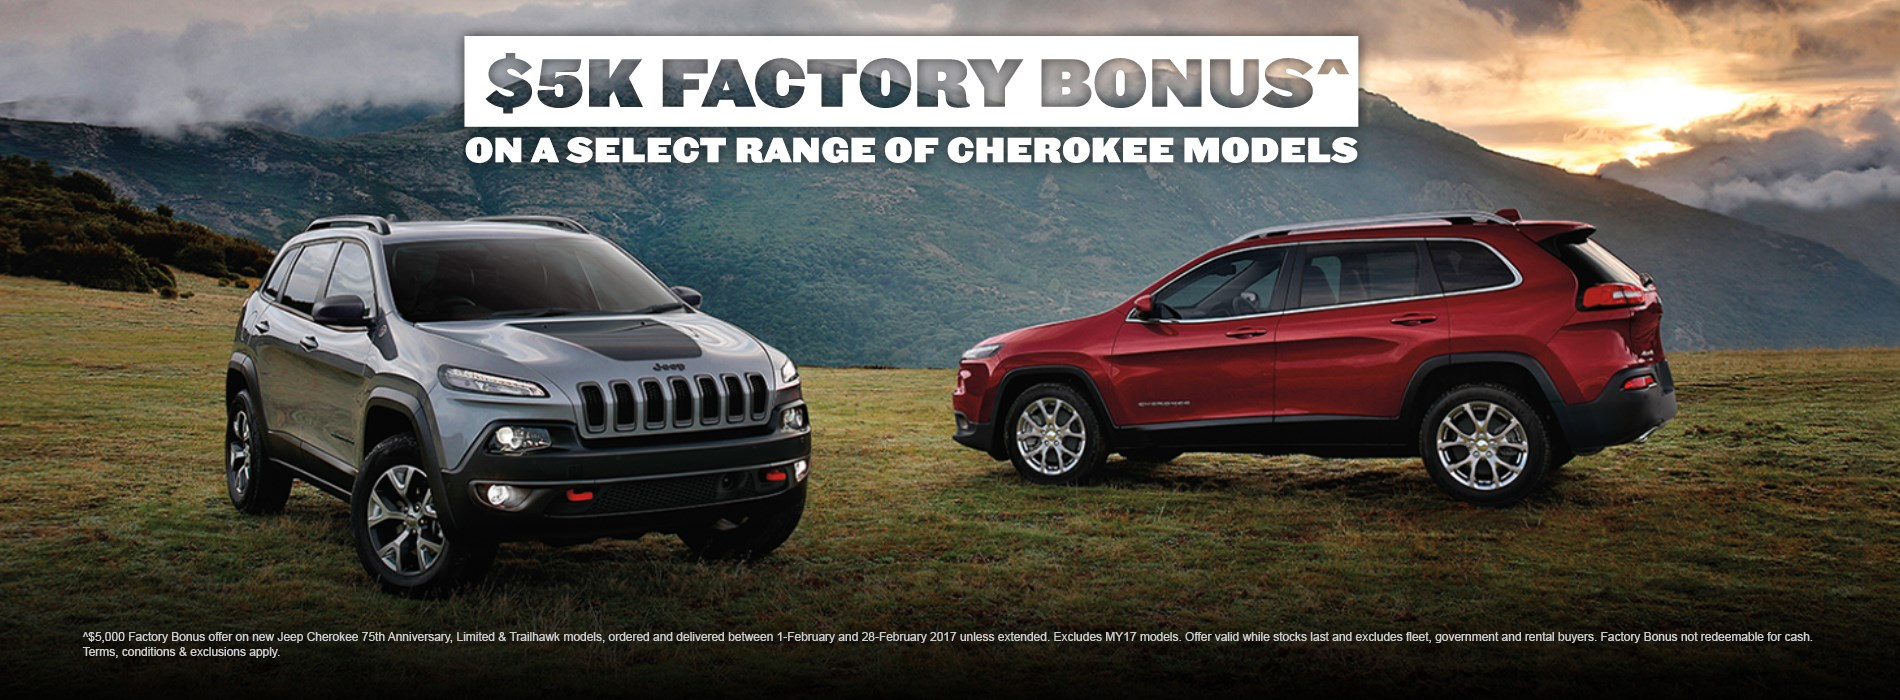 Jeep Cherokee $5K Factory Bonus Offer